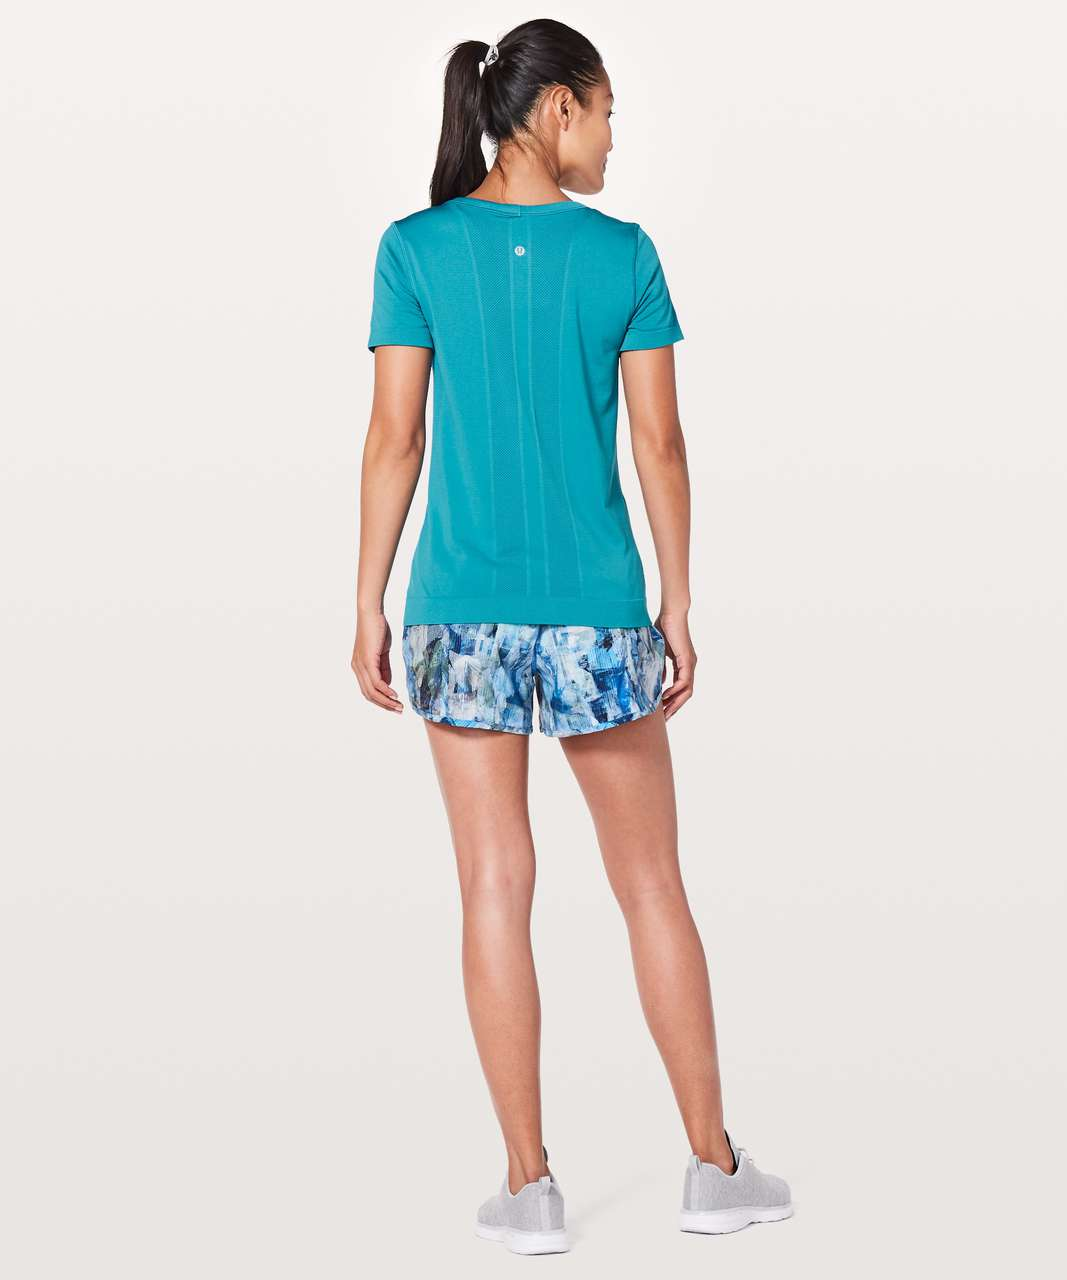 Lululemon Swiftly Tech Short Sleeve (Breeze) *Relaxed Fit - Teal Blue / Teal Blue